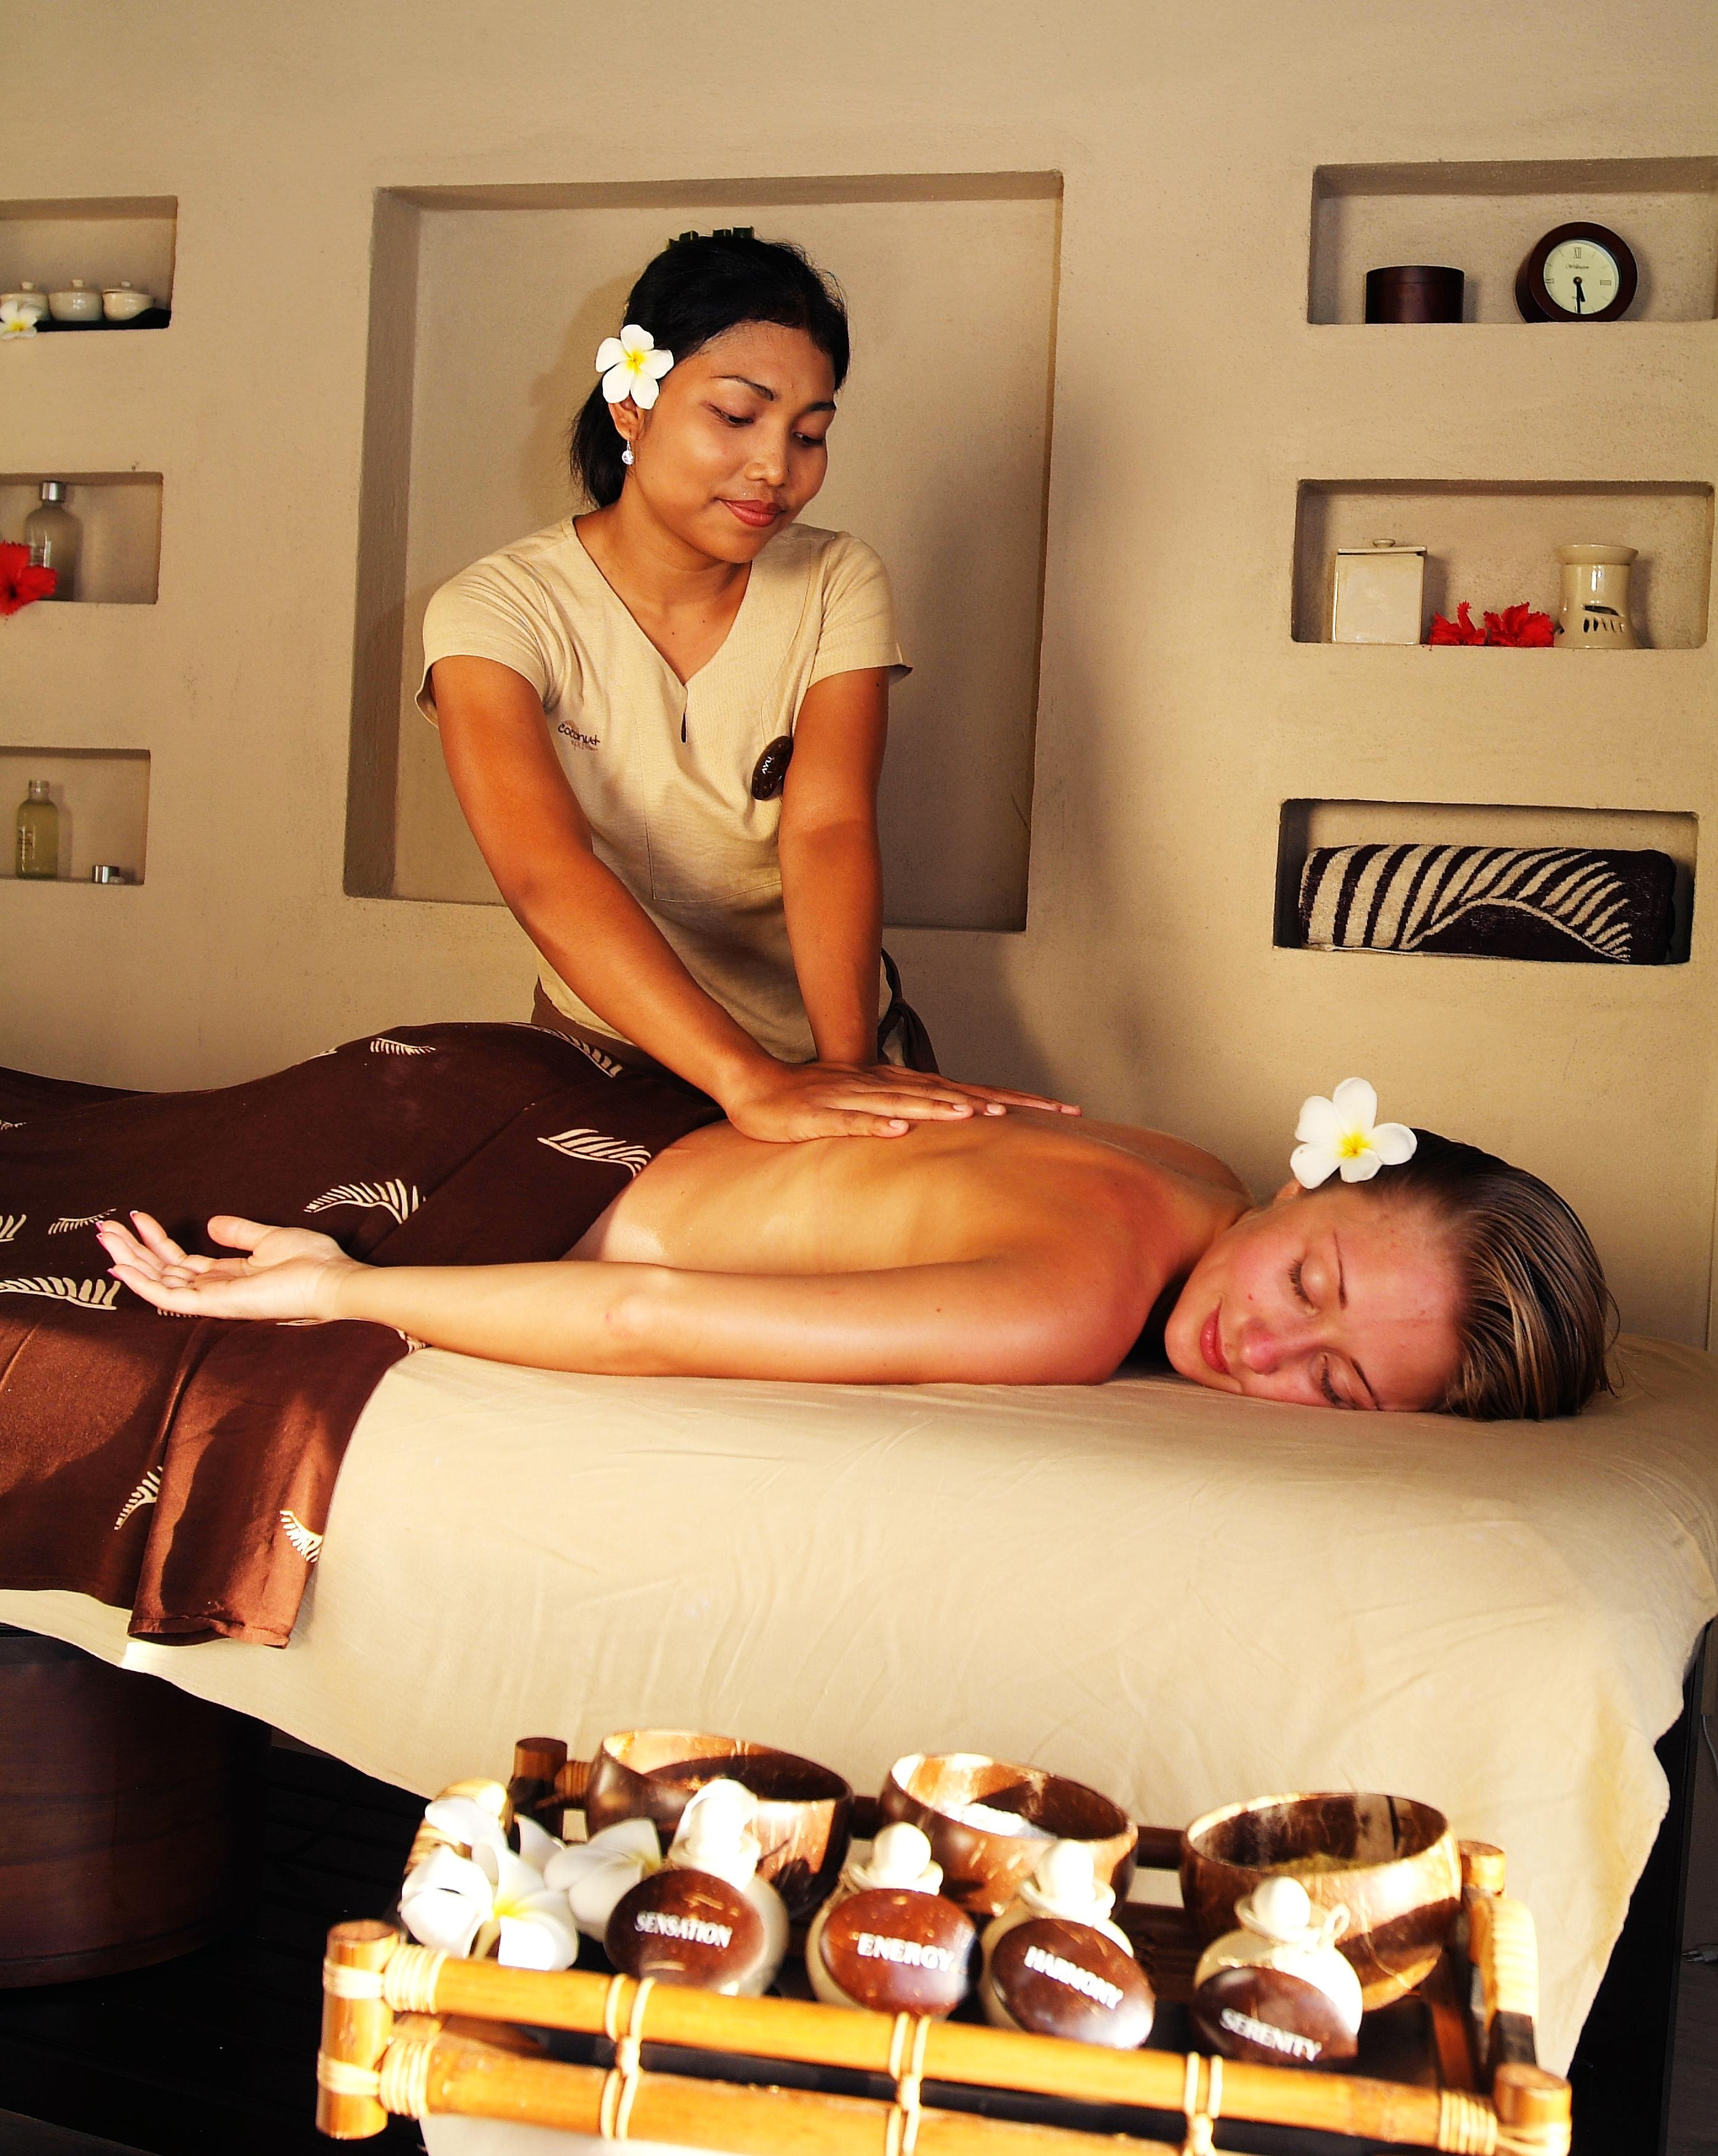 https://www.adaaran.com/prestigevadoo/wp-content/uploads/sites/5/2014/04/Adaaran-Select-Hudhuranfushi_Spa-5.jpg